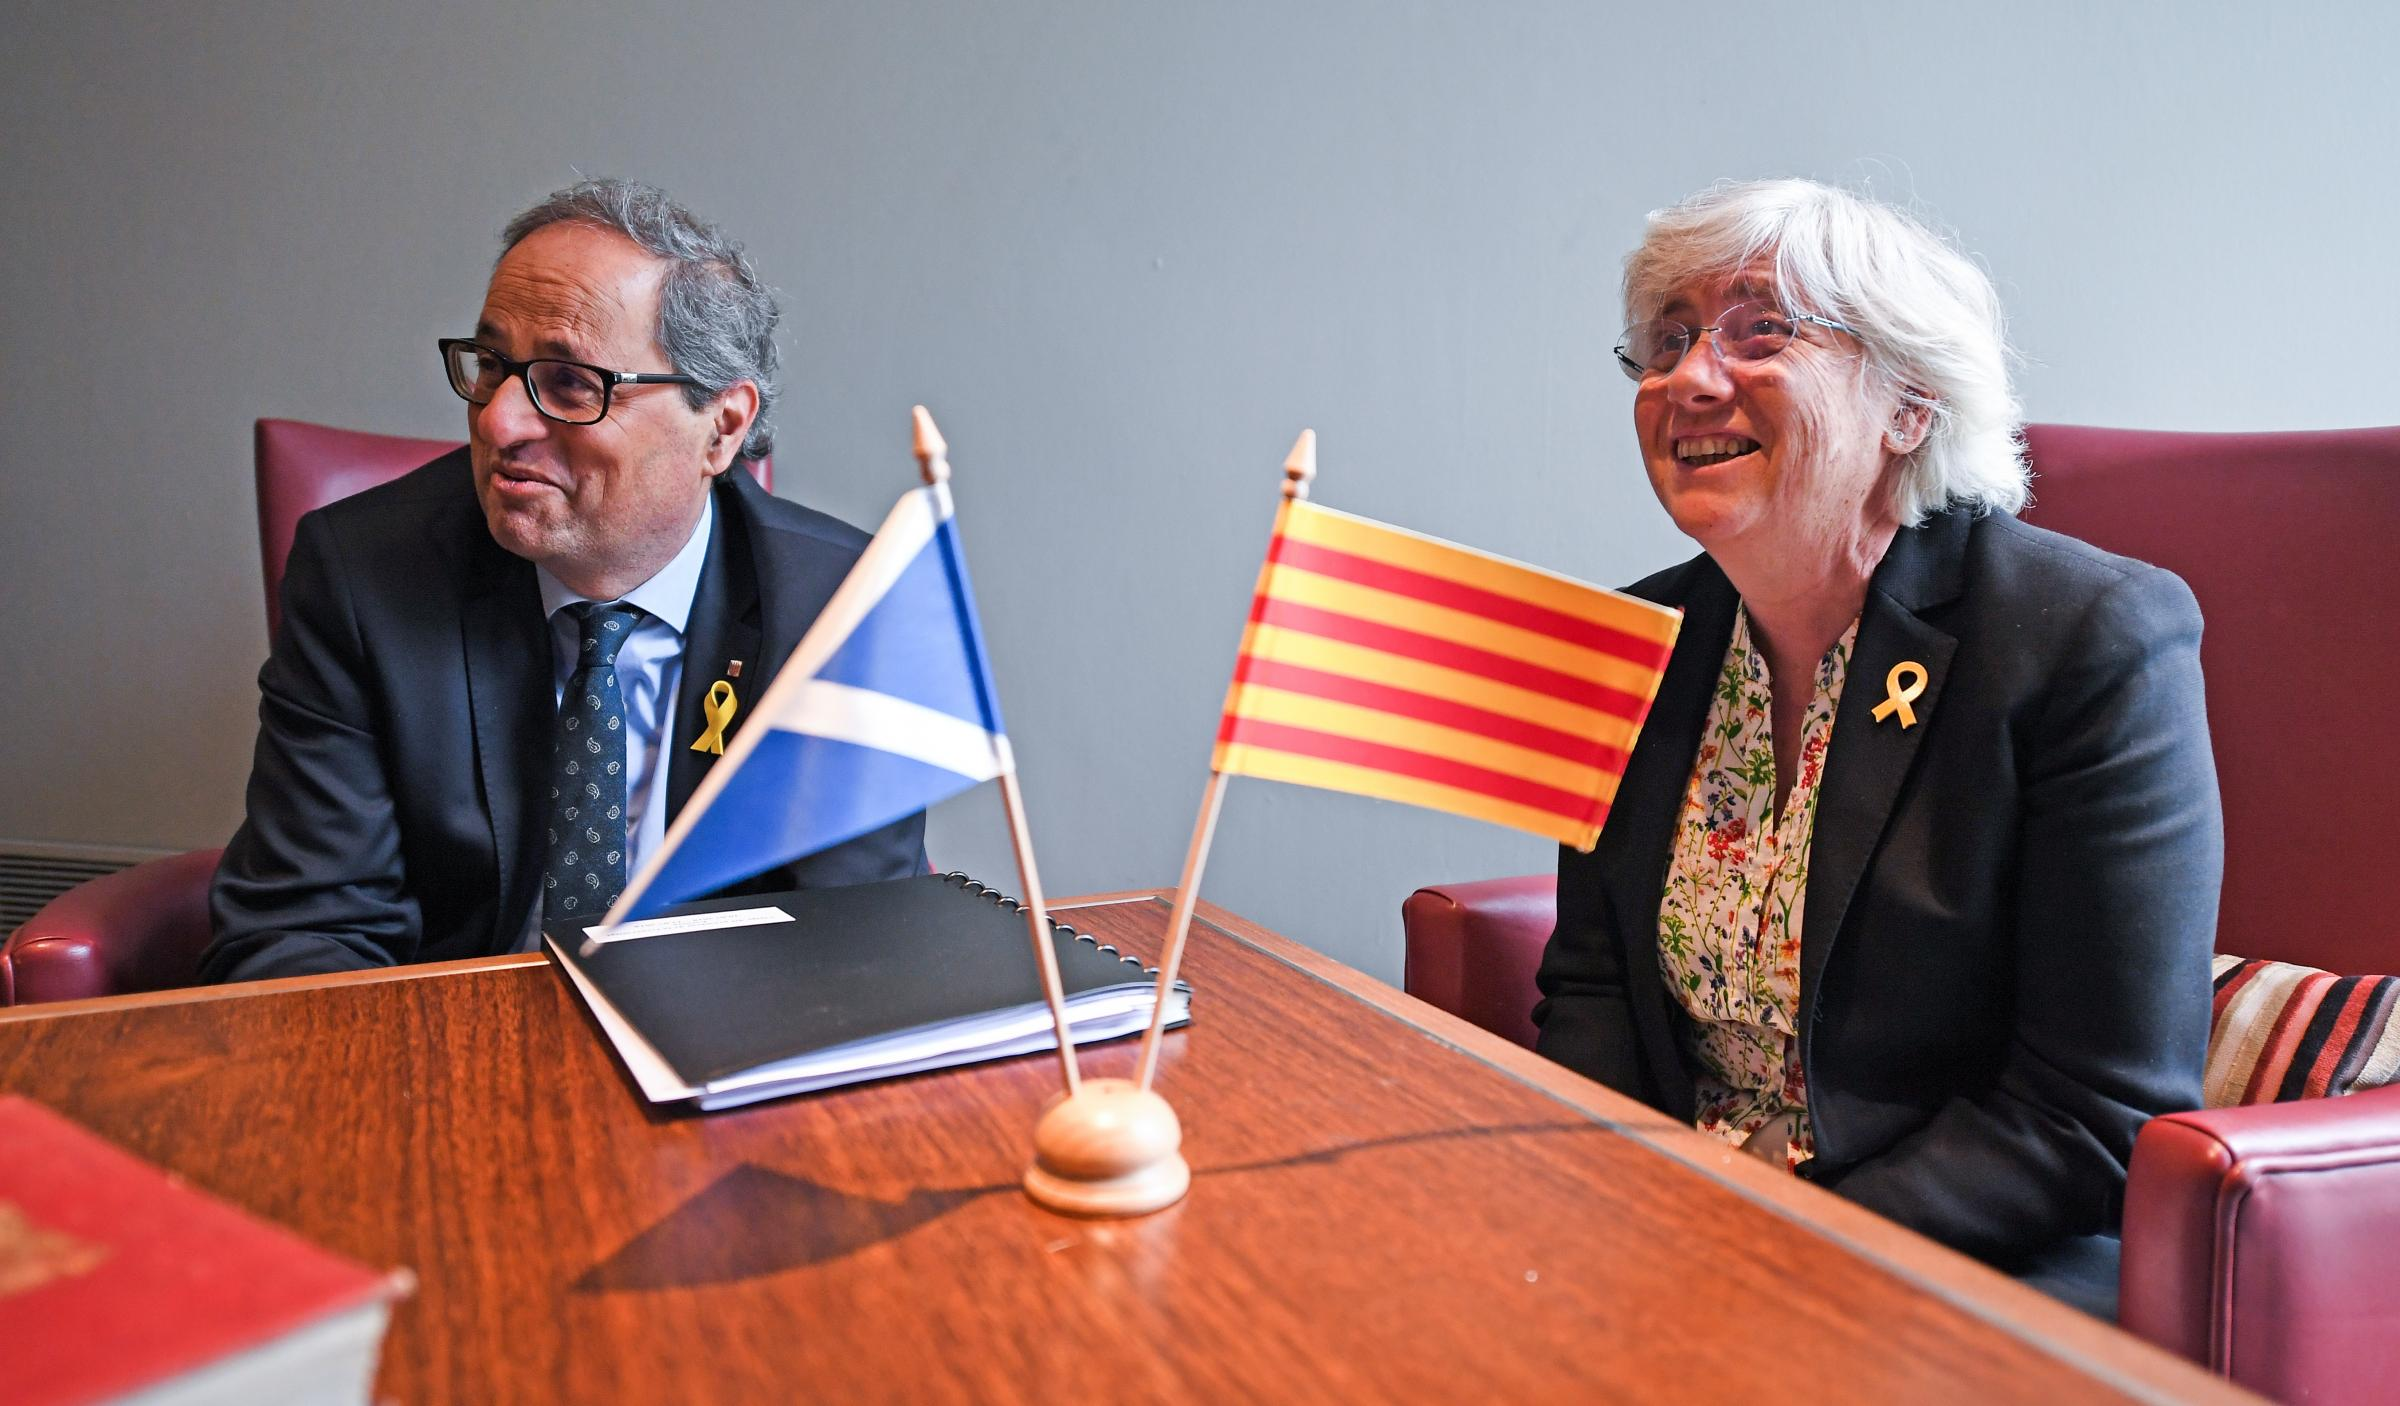 President of Catalonia Quim Torra and former Catalan minister Clara Ponsati attended a press conference ahead of a meeting with Scotland's First Minister Nicola Sturgeon. Photograph: Getty